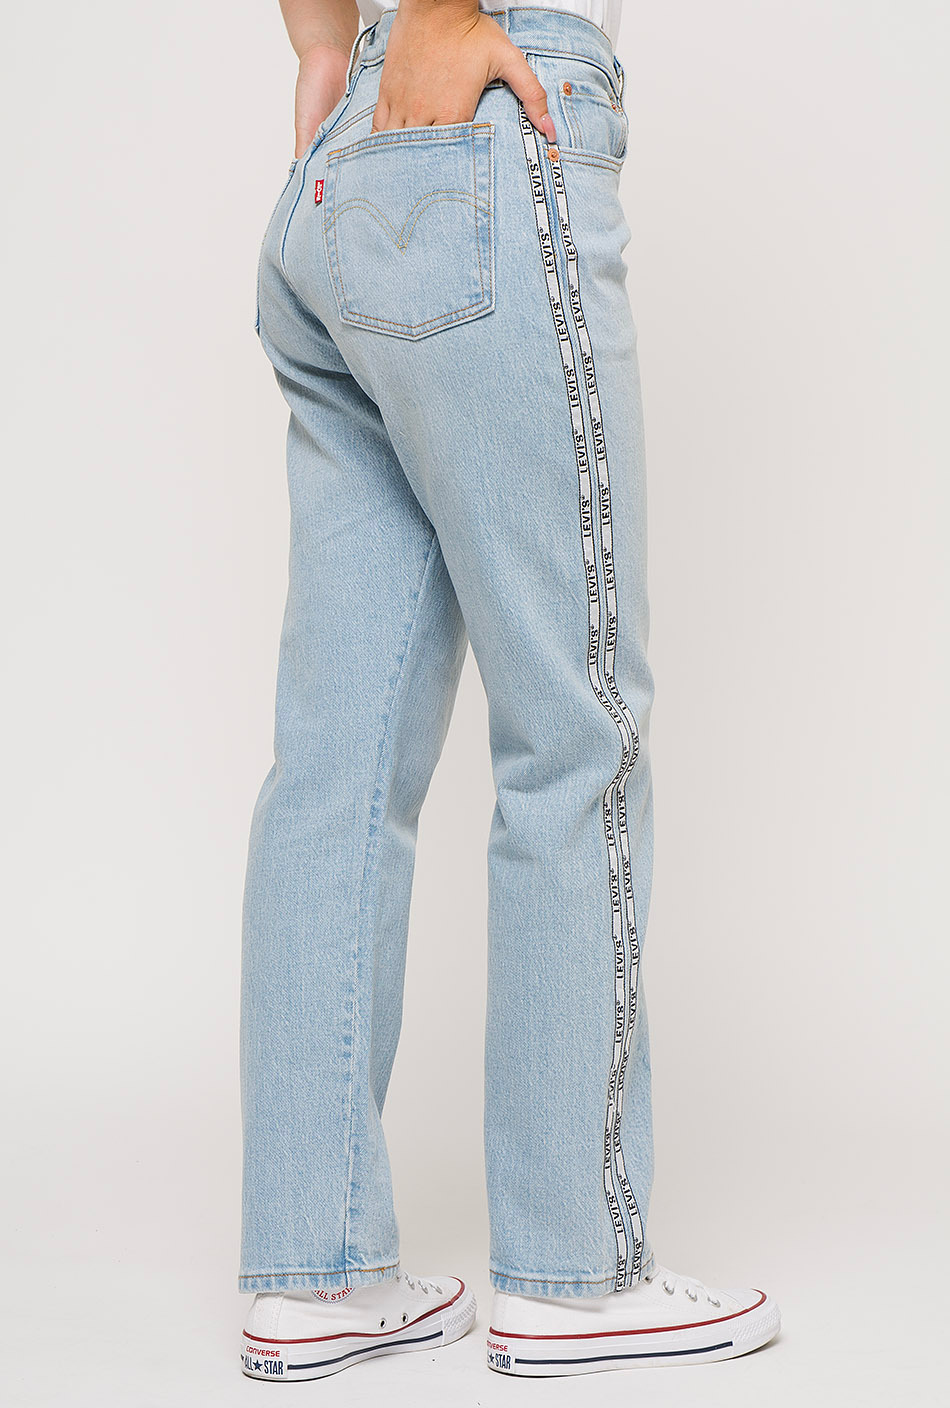 Levi's 501 crop jeans denim